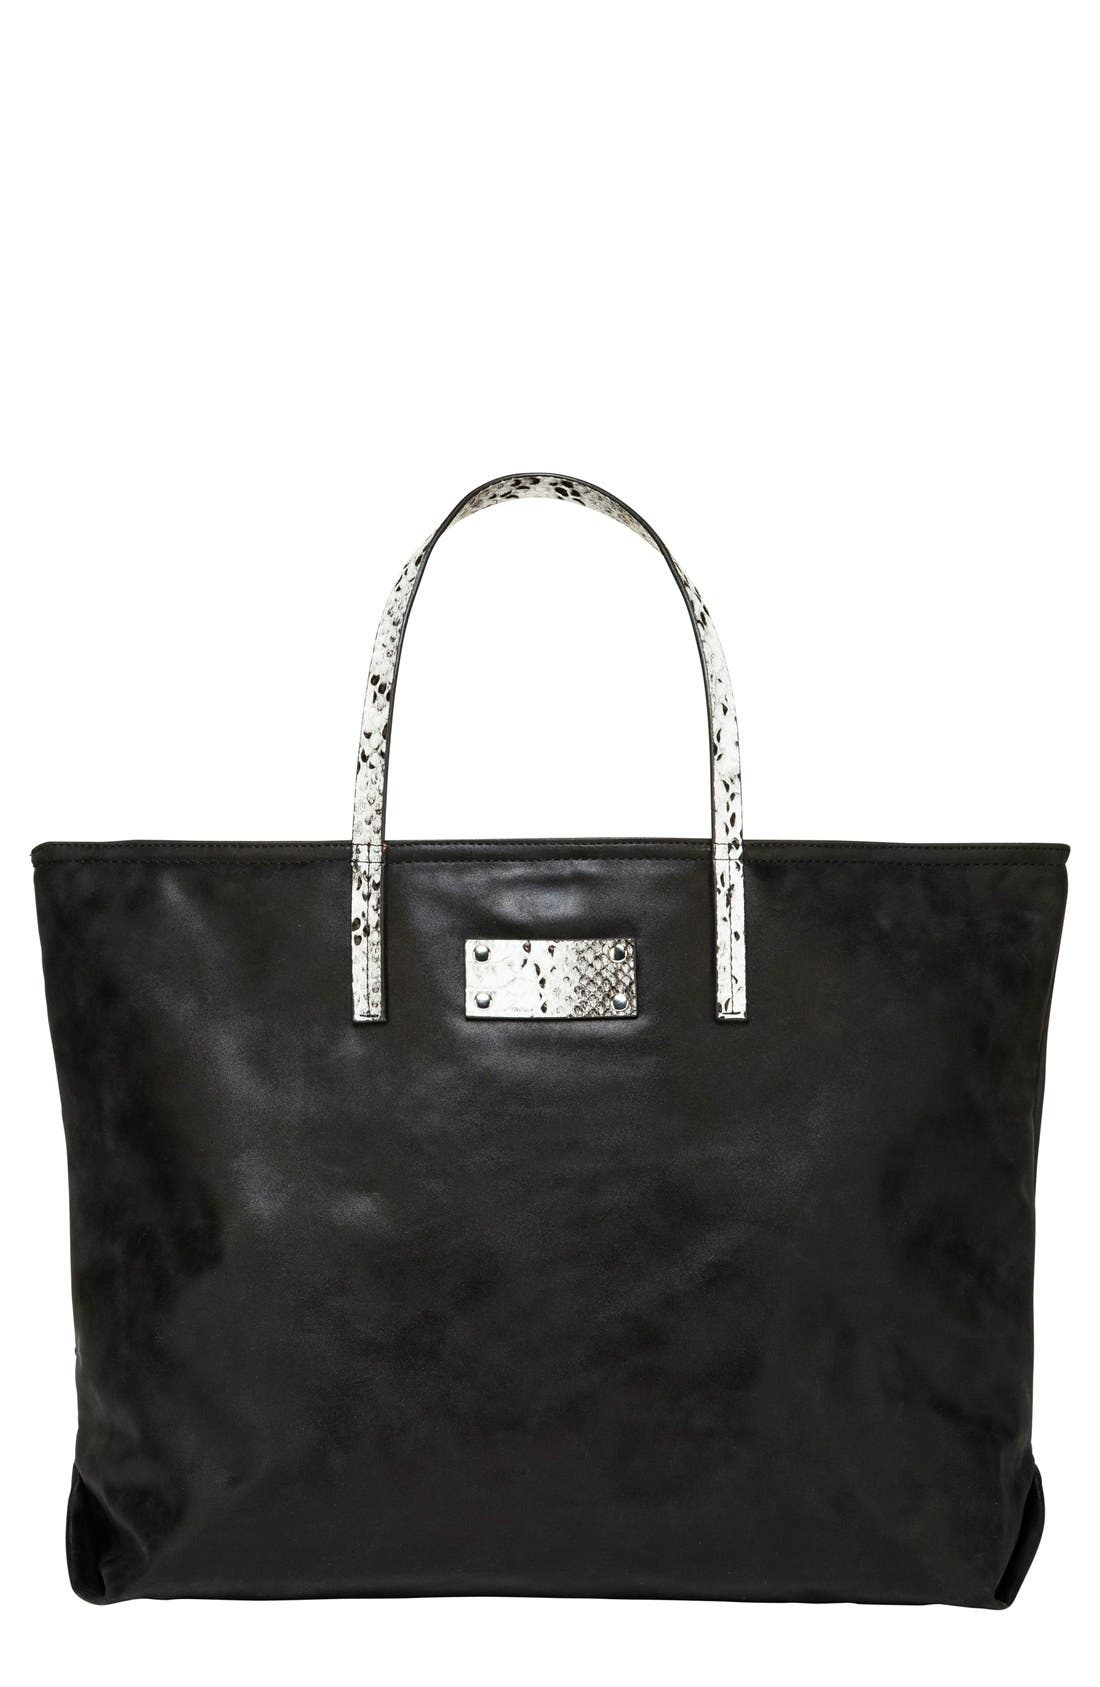 SUN VALLEY VEGAN LEATHER TOTE - BLACK